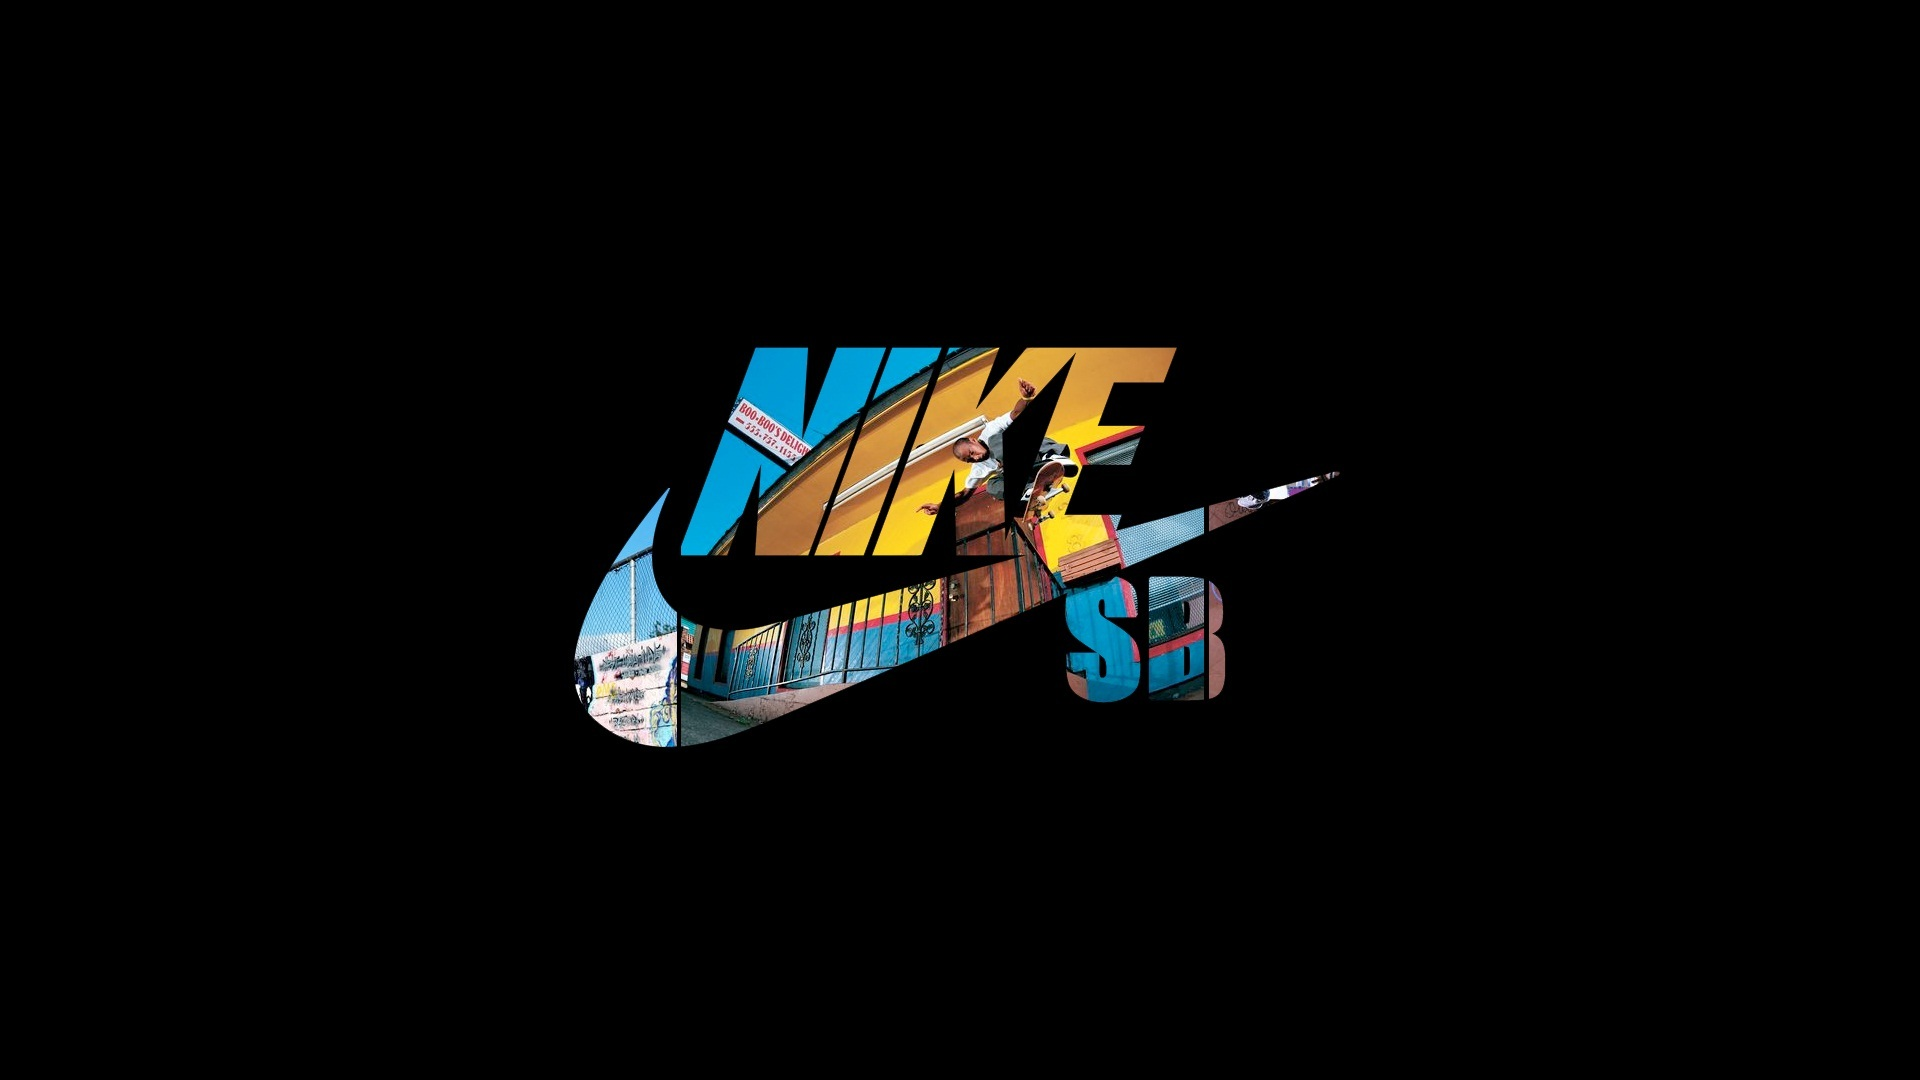 nike just do it wallpaper - photo #15